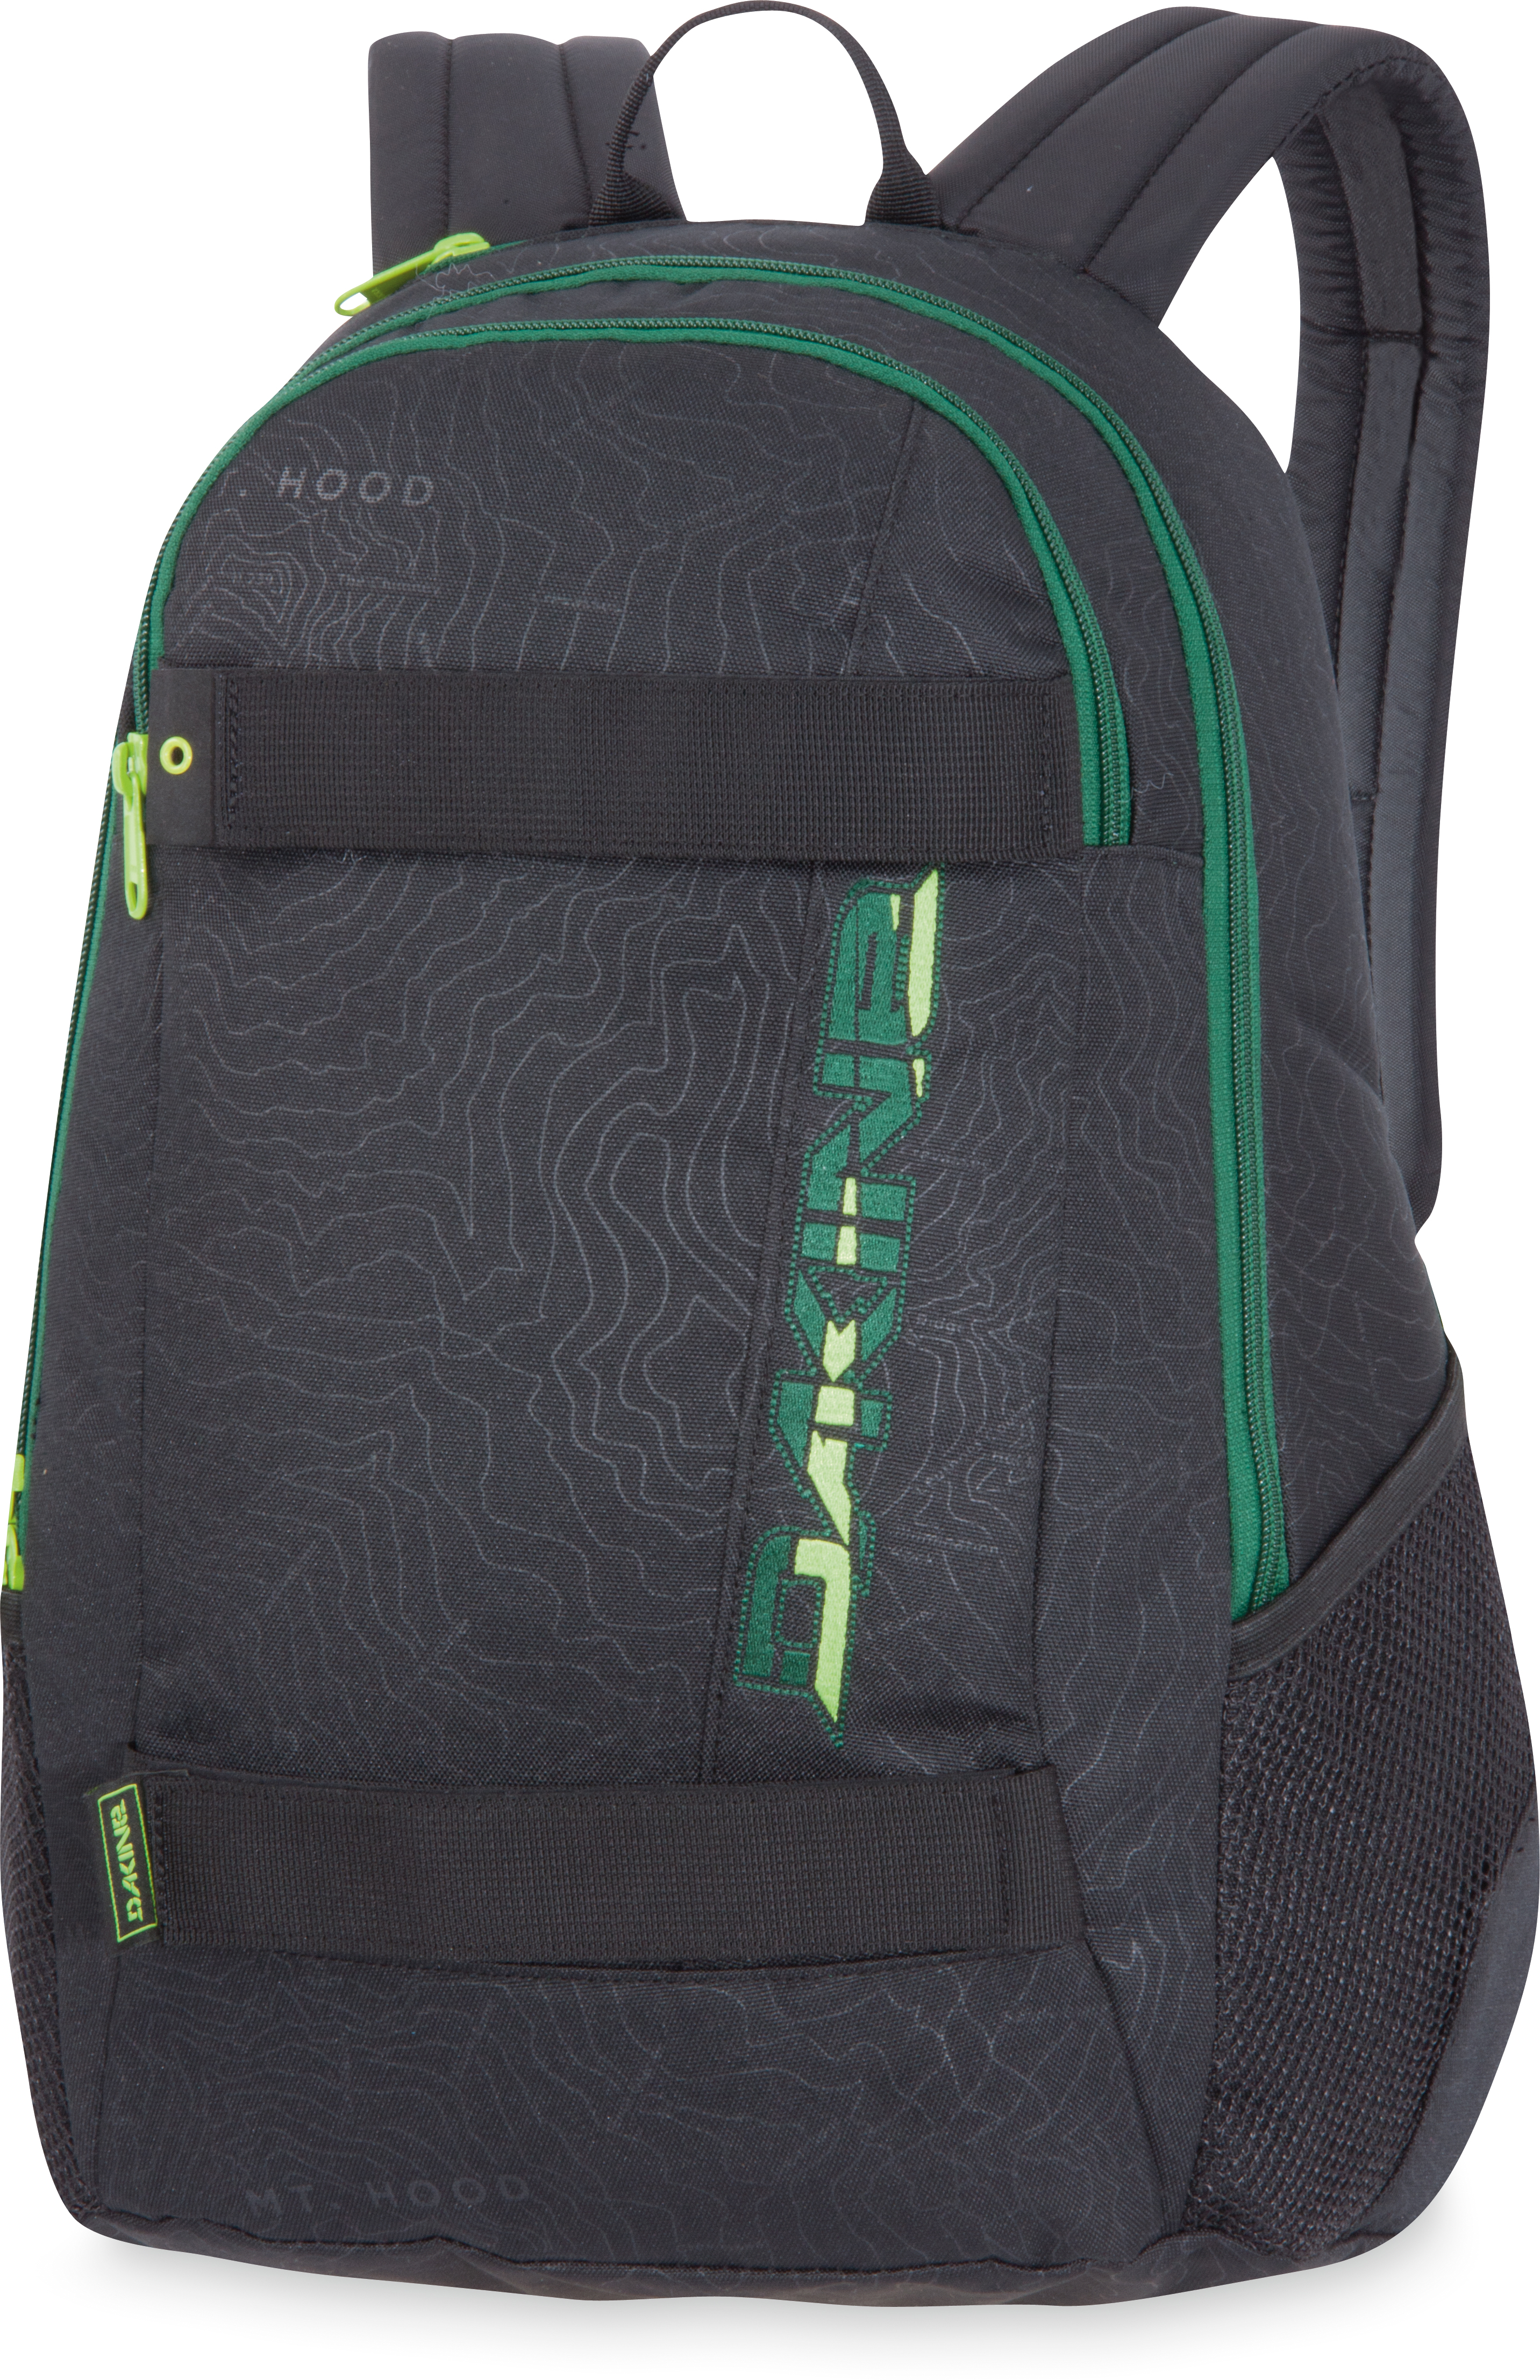 Dakine Exit Skateboard Backpack 20L 2014 Rucksack Skate Pack Bag ...